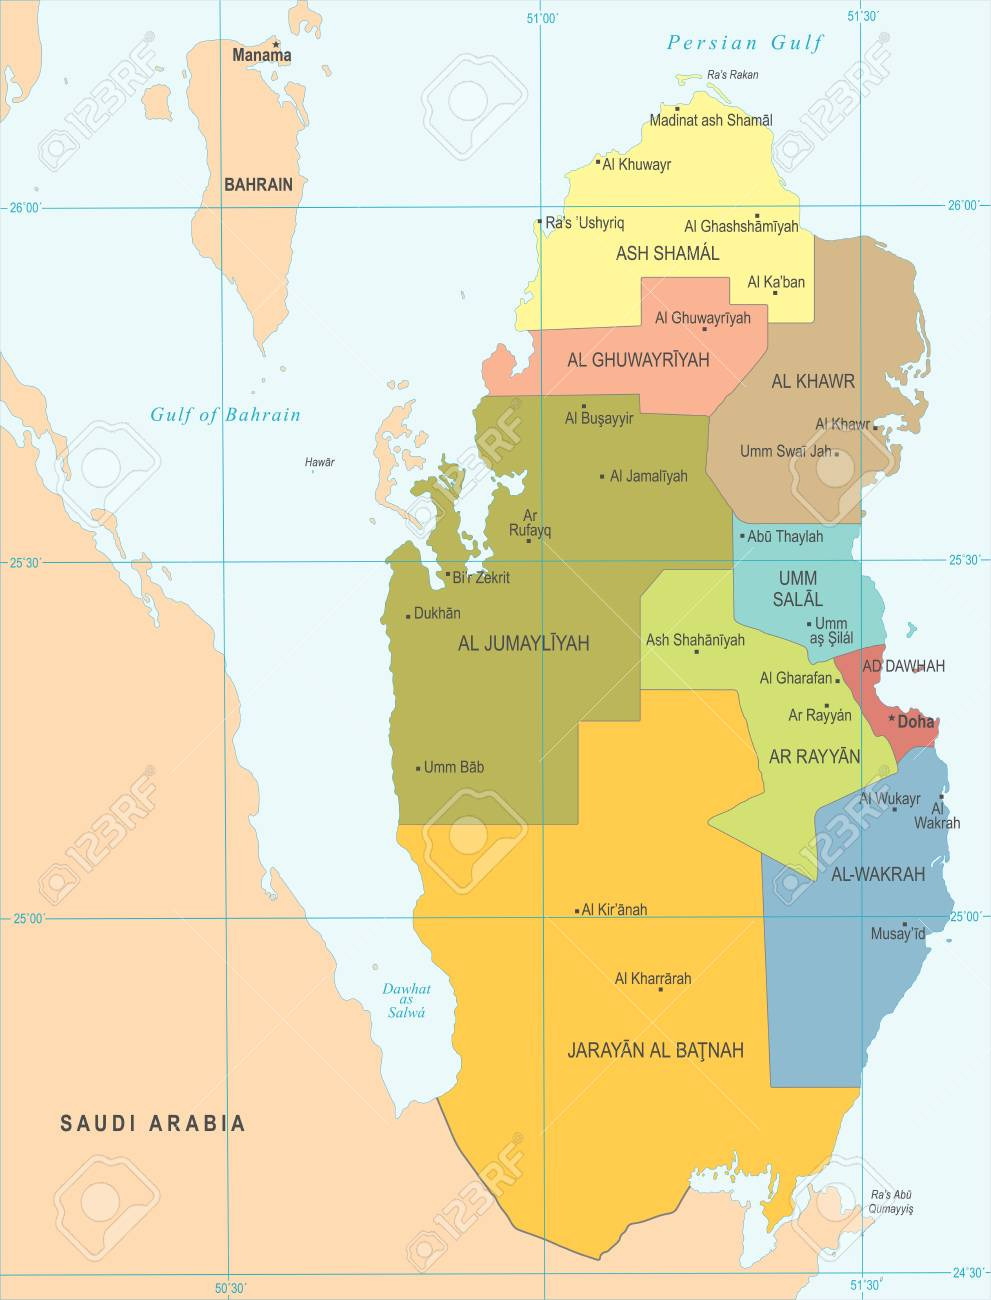 Qatar Map - High Detailed Vector Illustration Royalty Free Cliparts ...